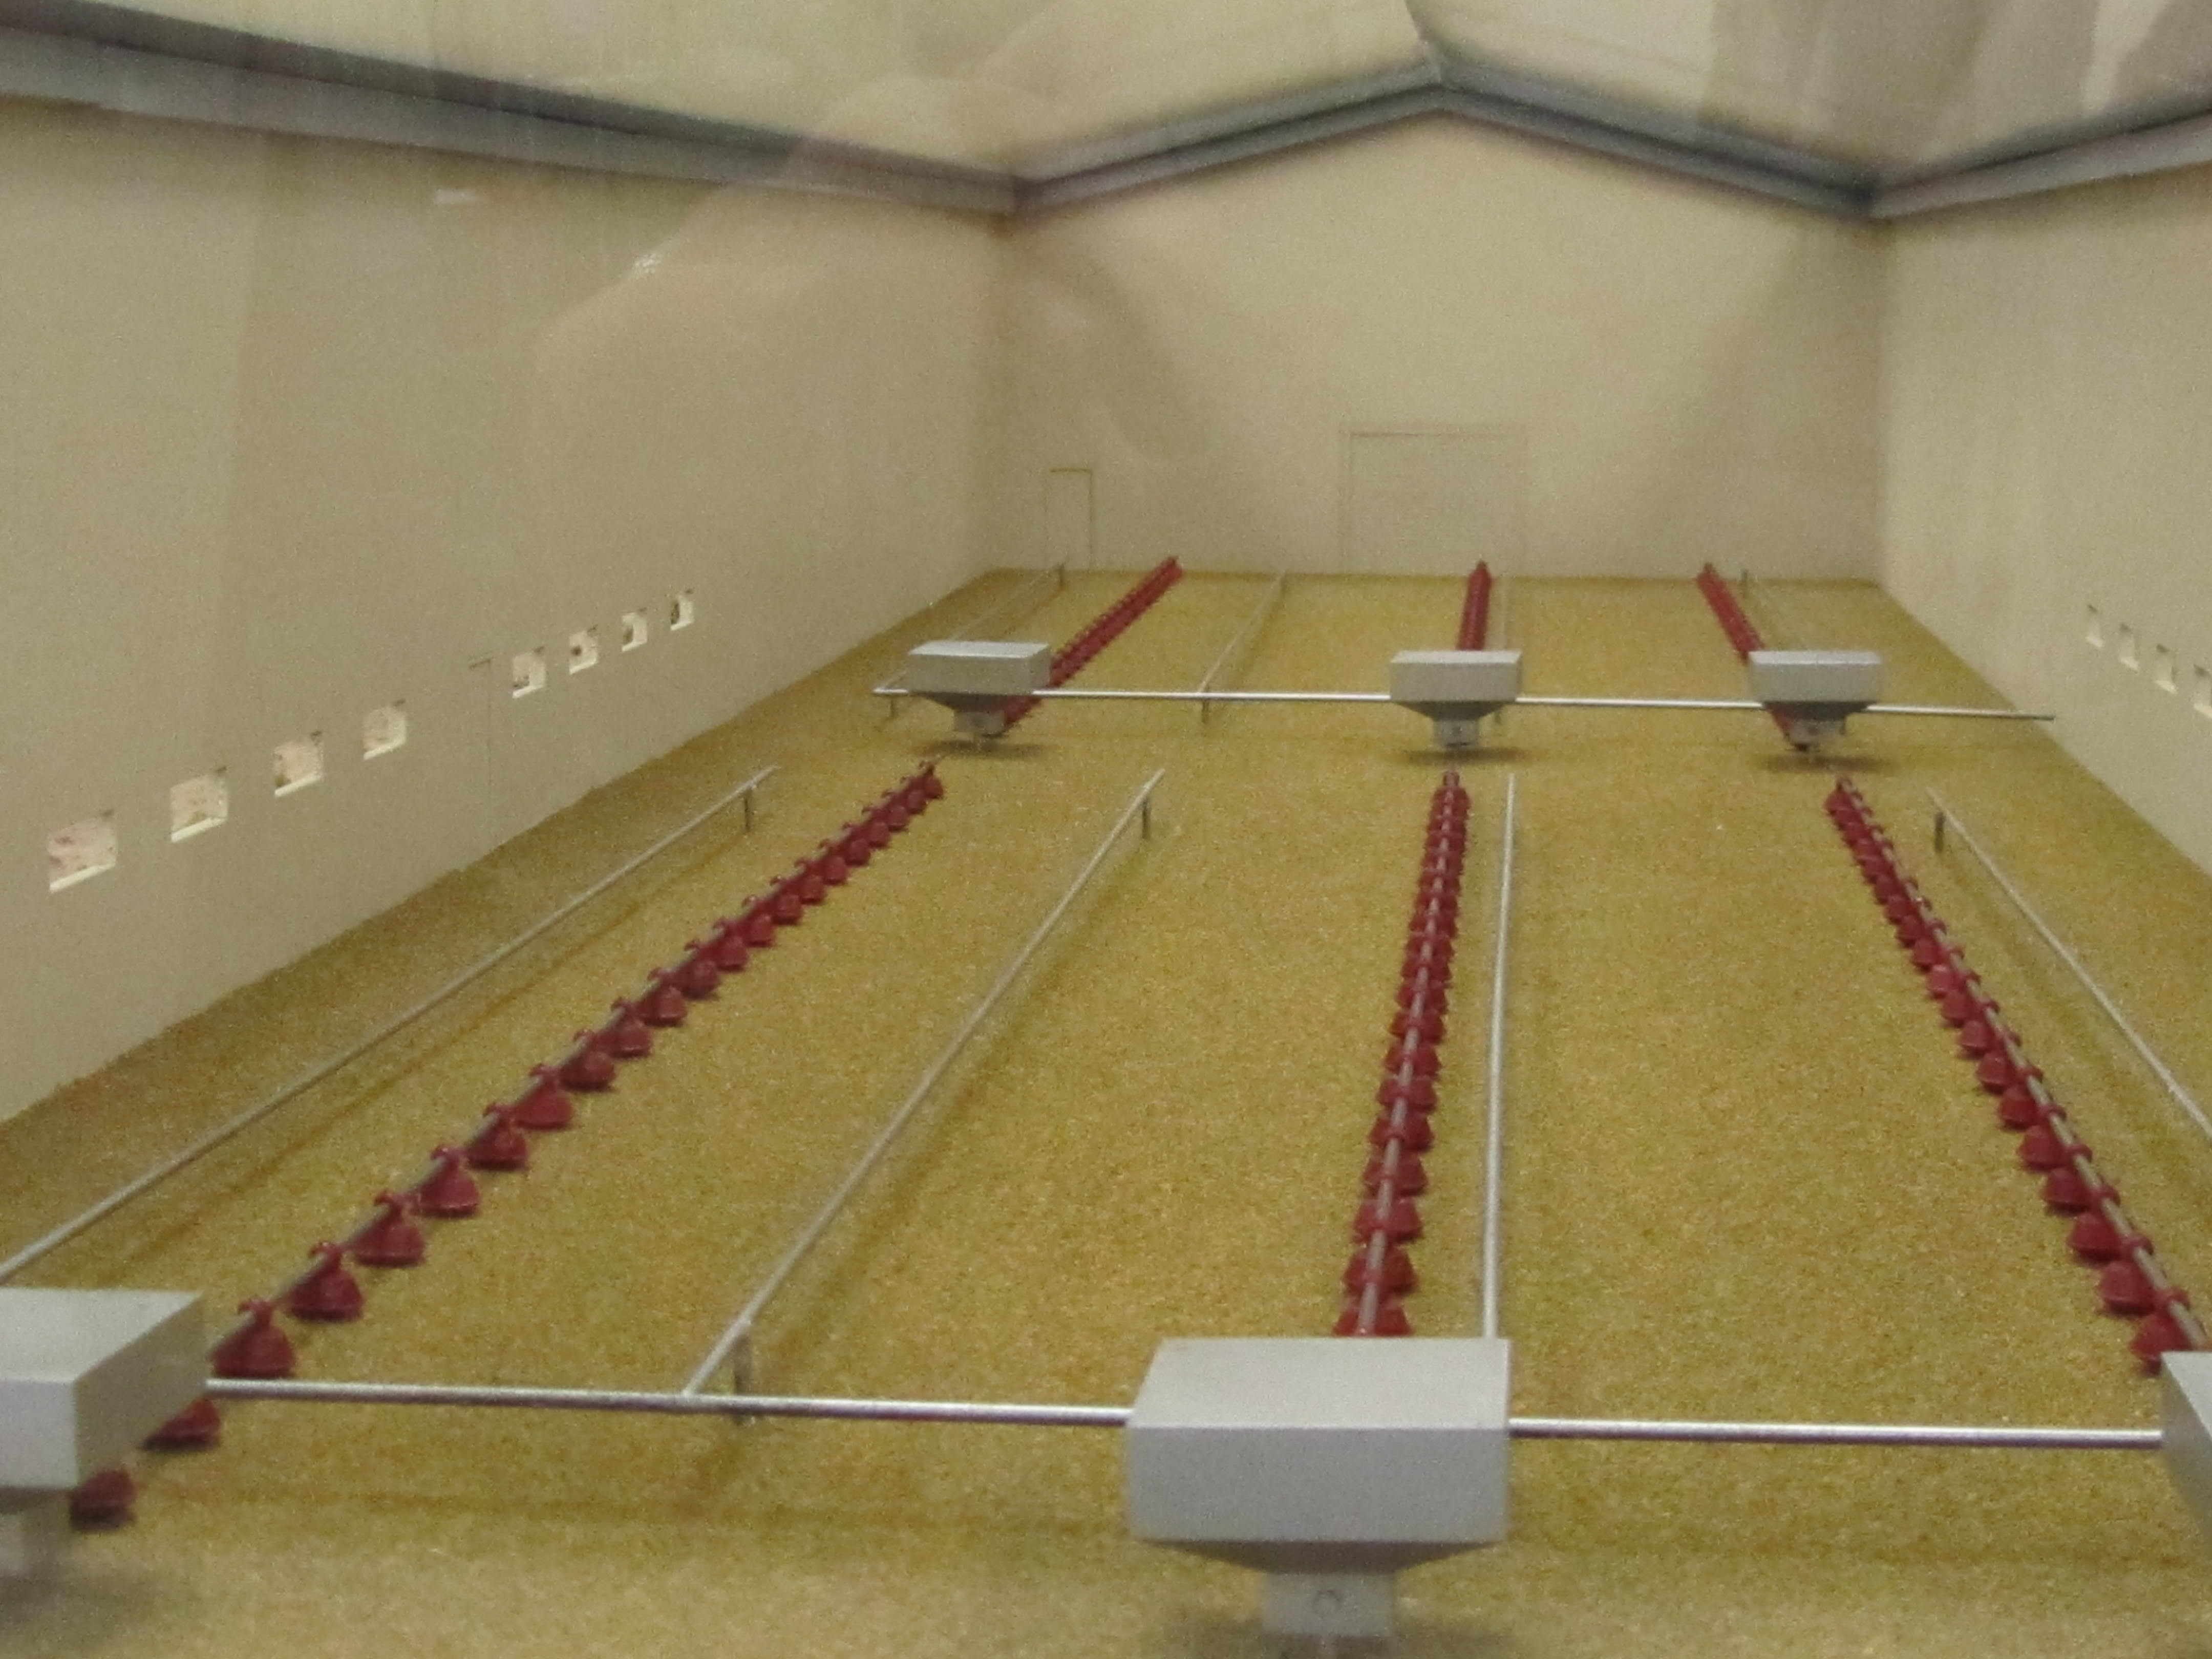 poultry house trade show model